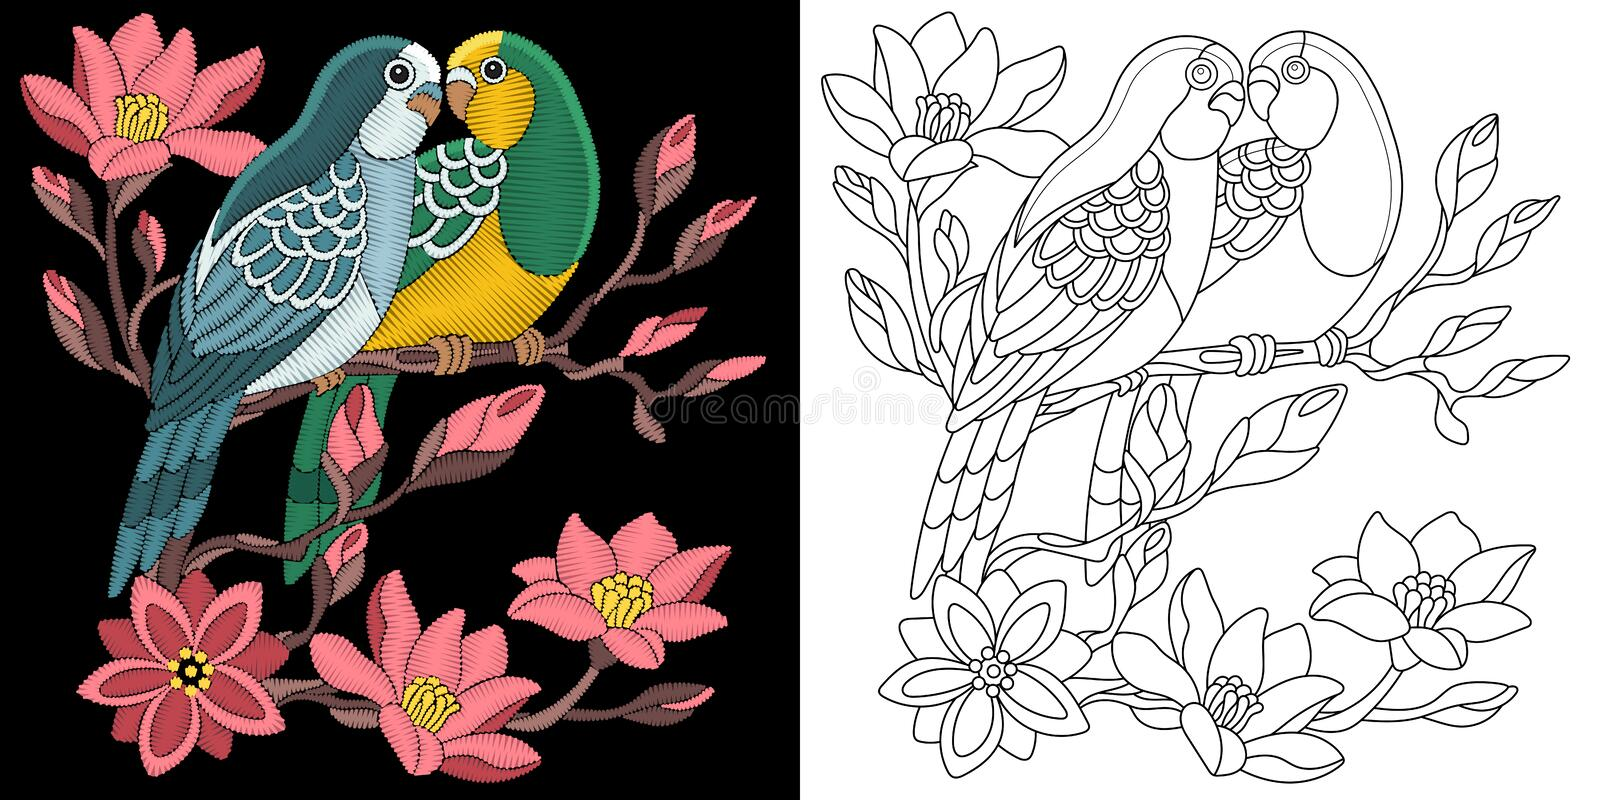 Embroidery budgie parrots design royalty free stock image